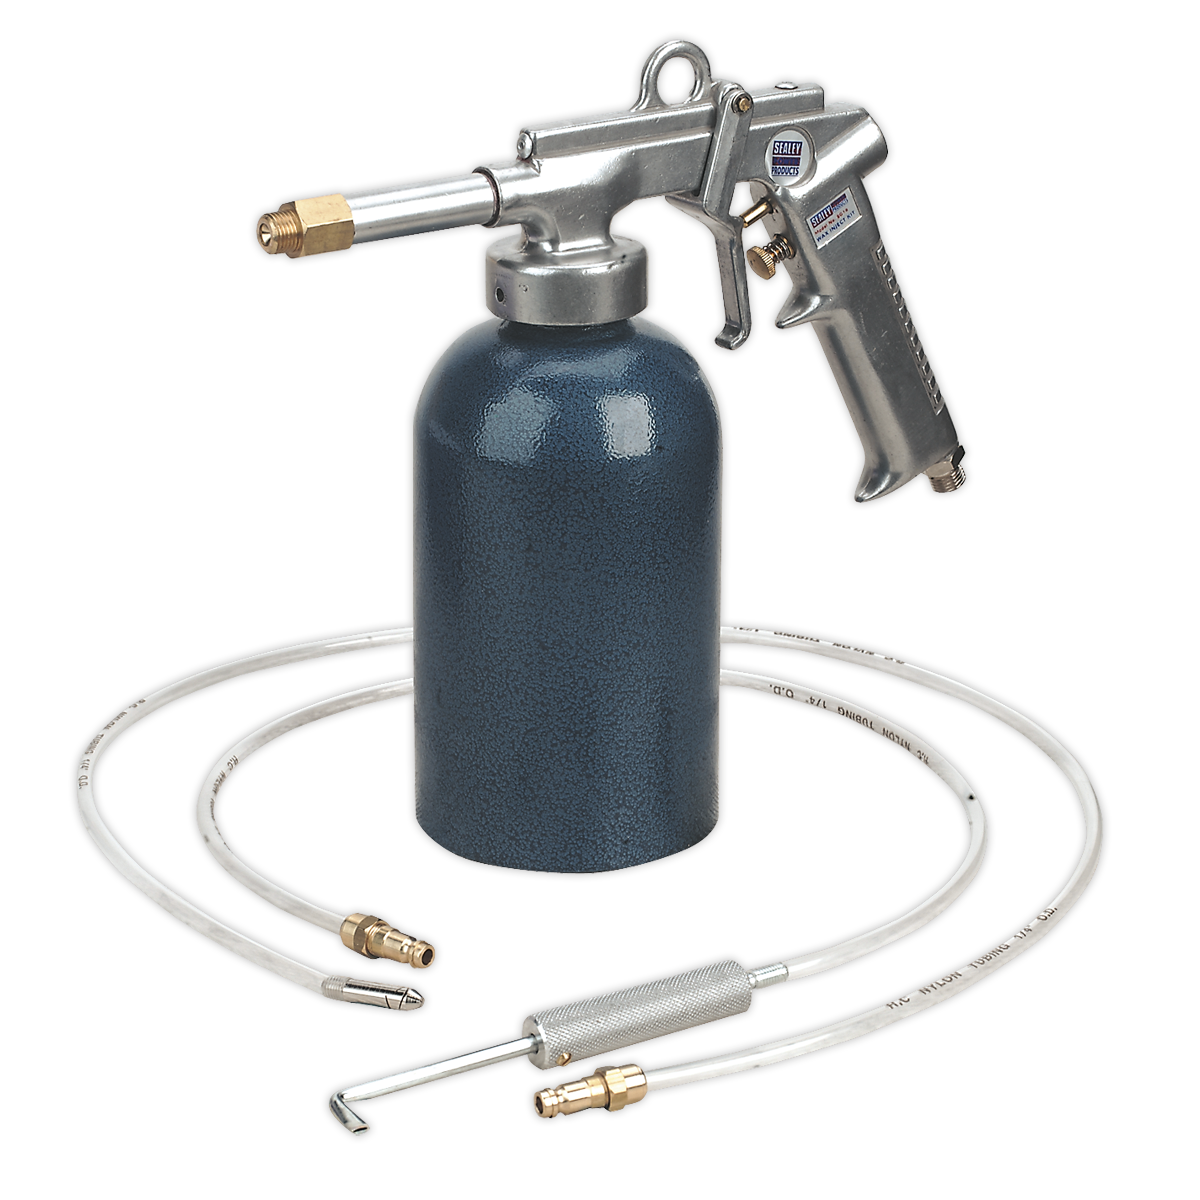 Air Operated Wax Injector Kit